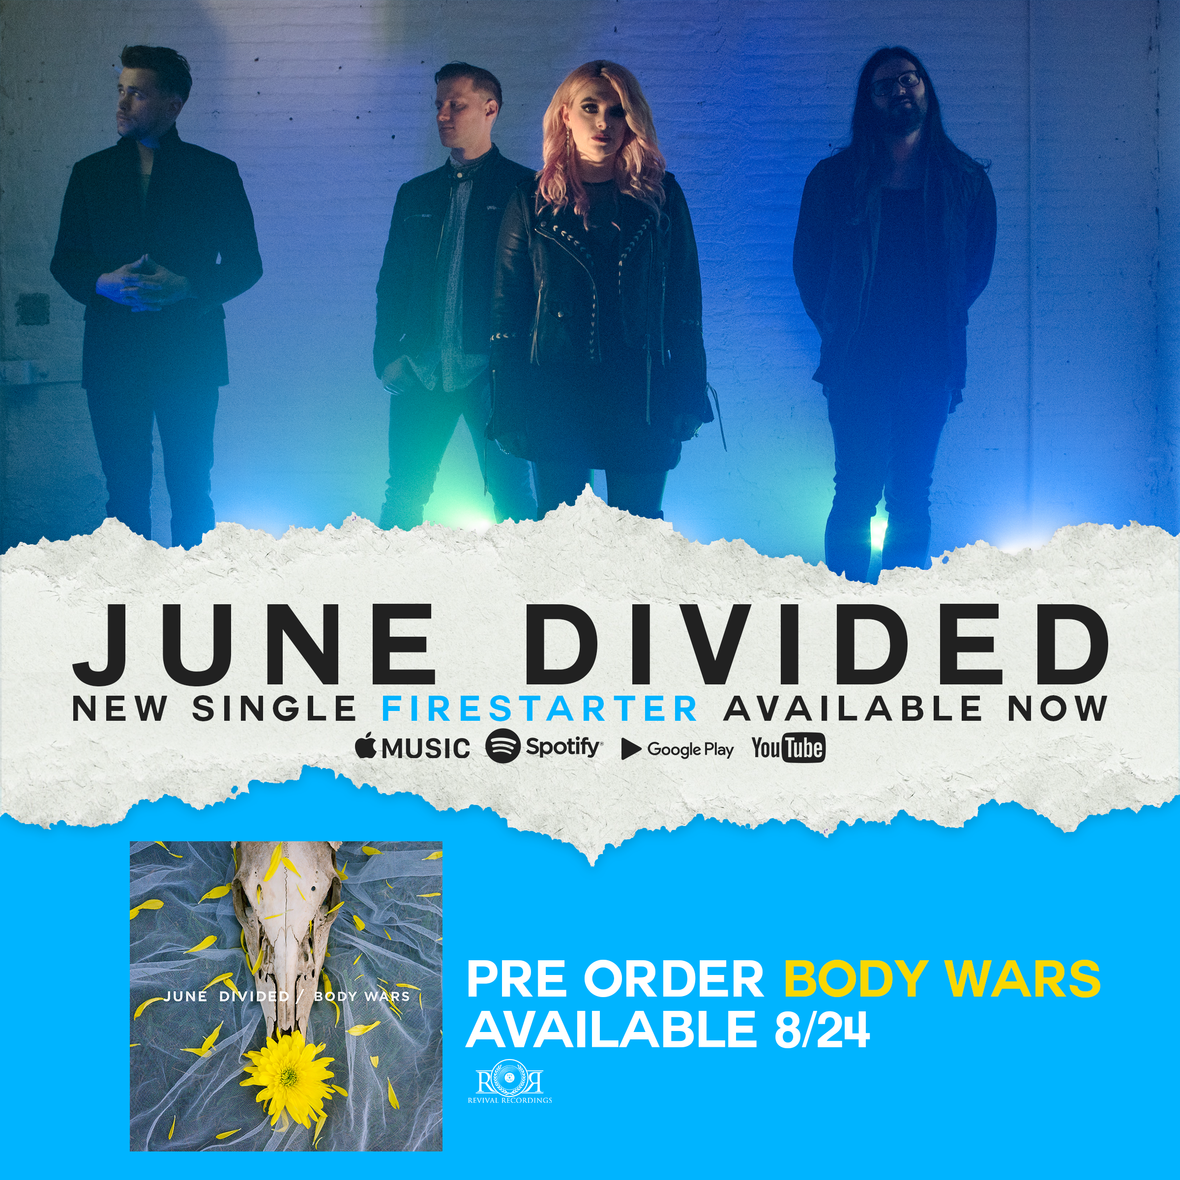 june divided new single